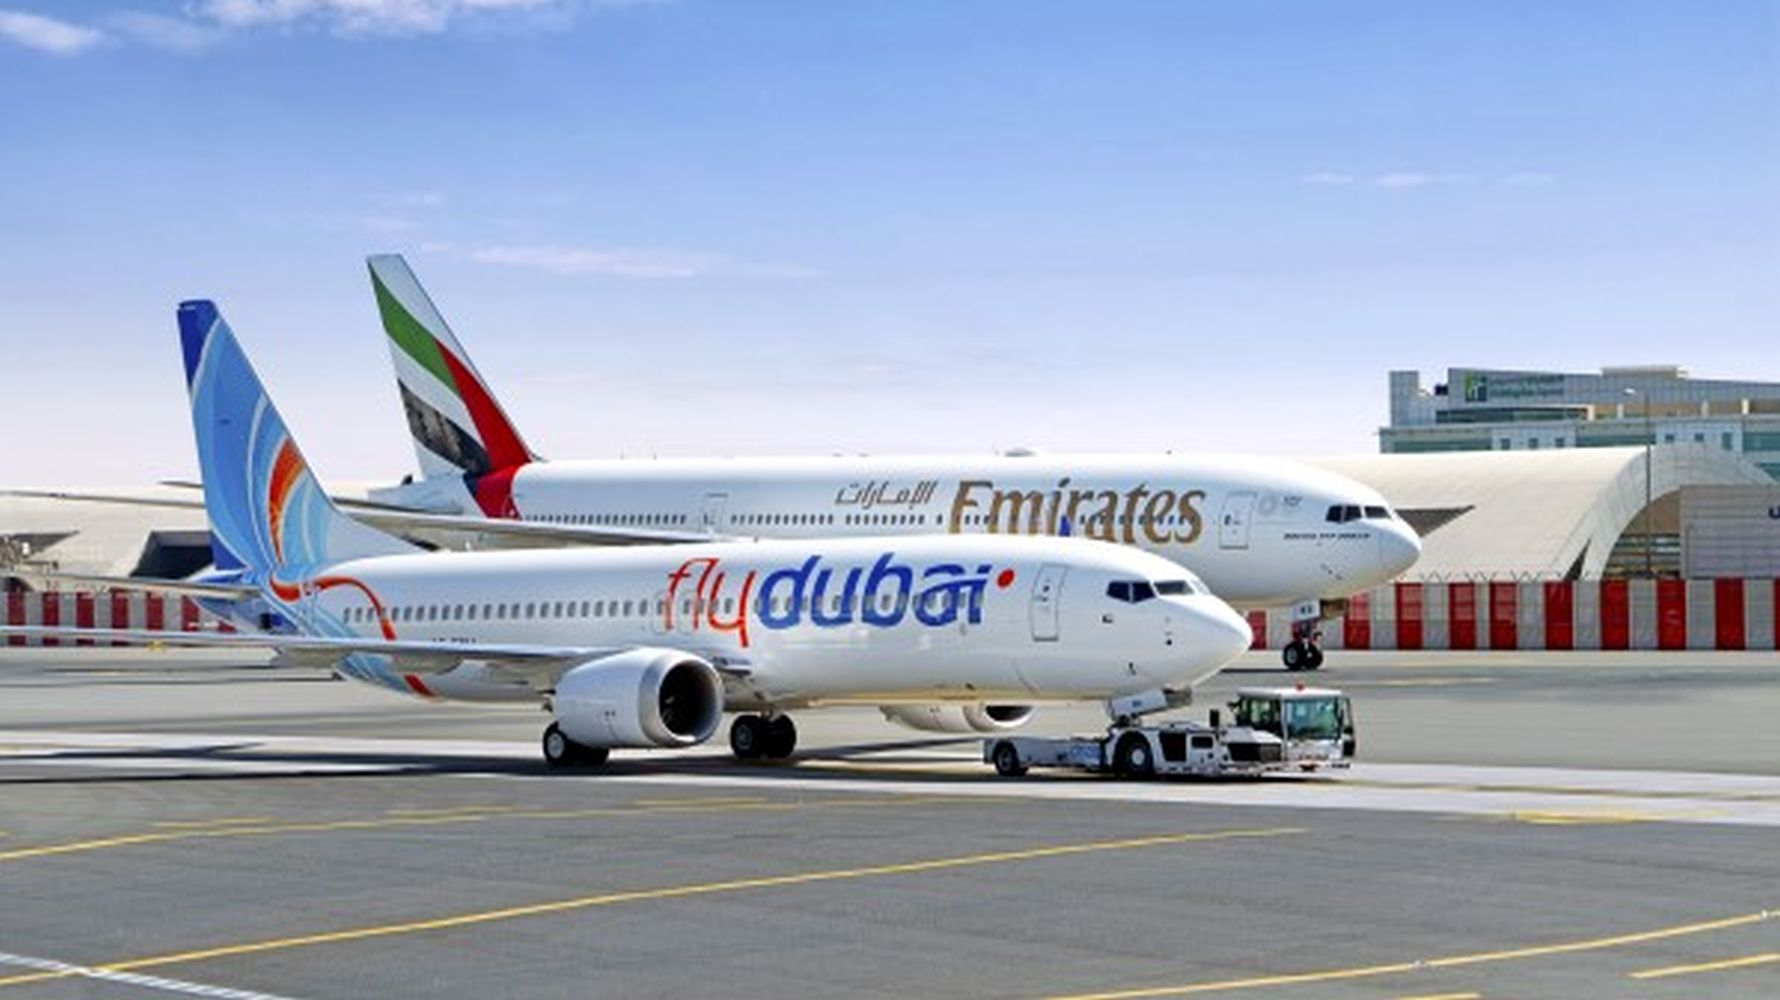 Emirates offers skywards members the chance to earn special extra stat miles